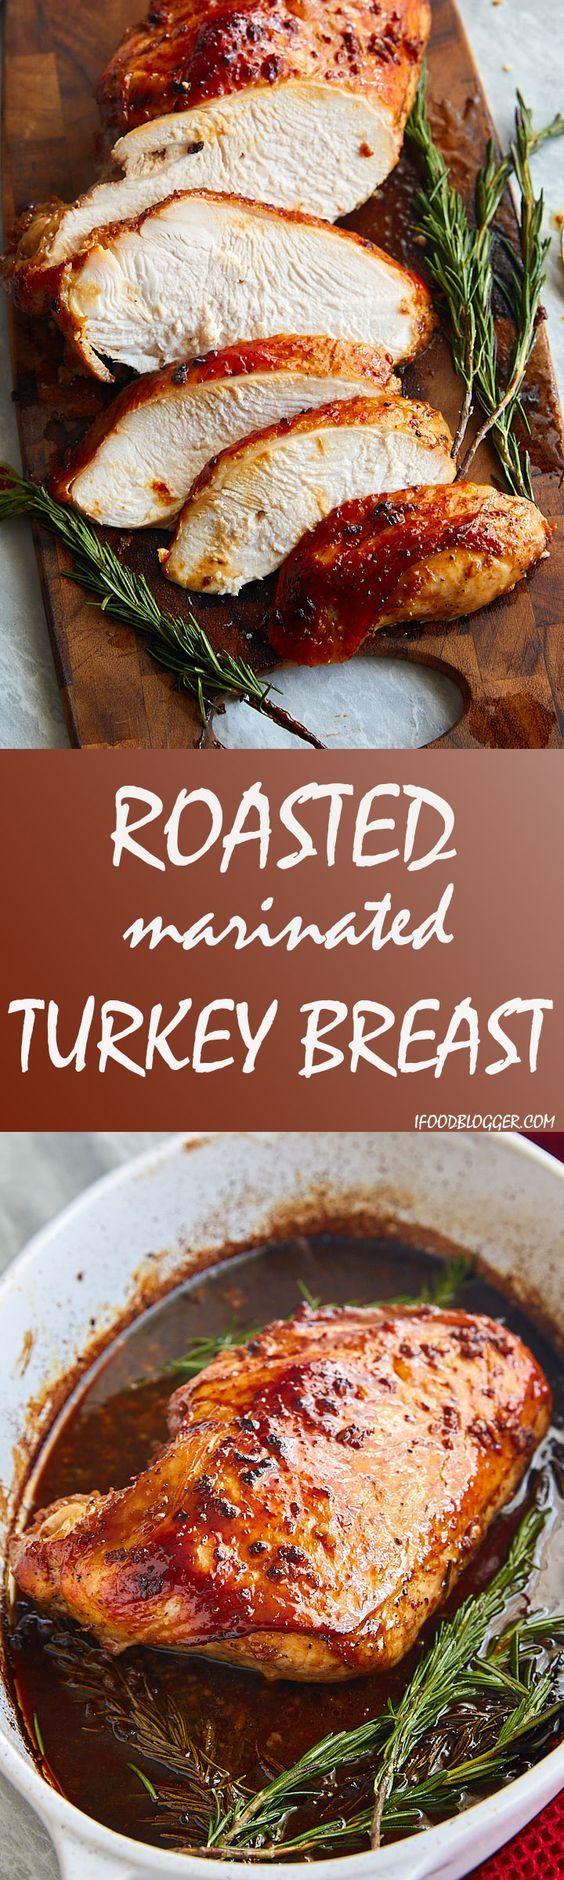 This roasted turkey breast will knock your socks off. It's not your typical turkey breast, it's roasted in a marinade that features Asian flavors and adds Worcestershire sauce and maple syrup for sweetness and more depth of flavor. If you are looking for an alternative to roasting a whole turkey for Thanksgiving, this recipe is a great option.